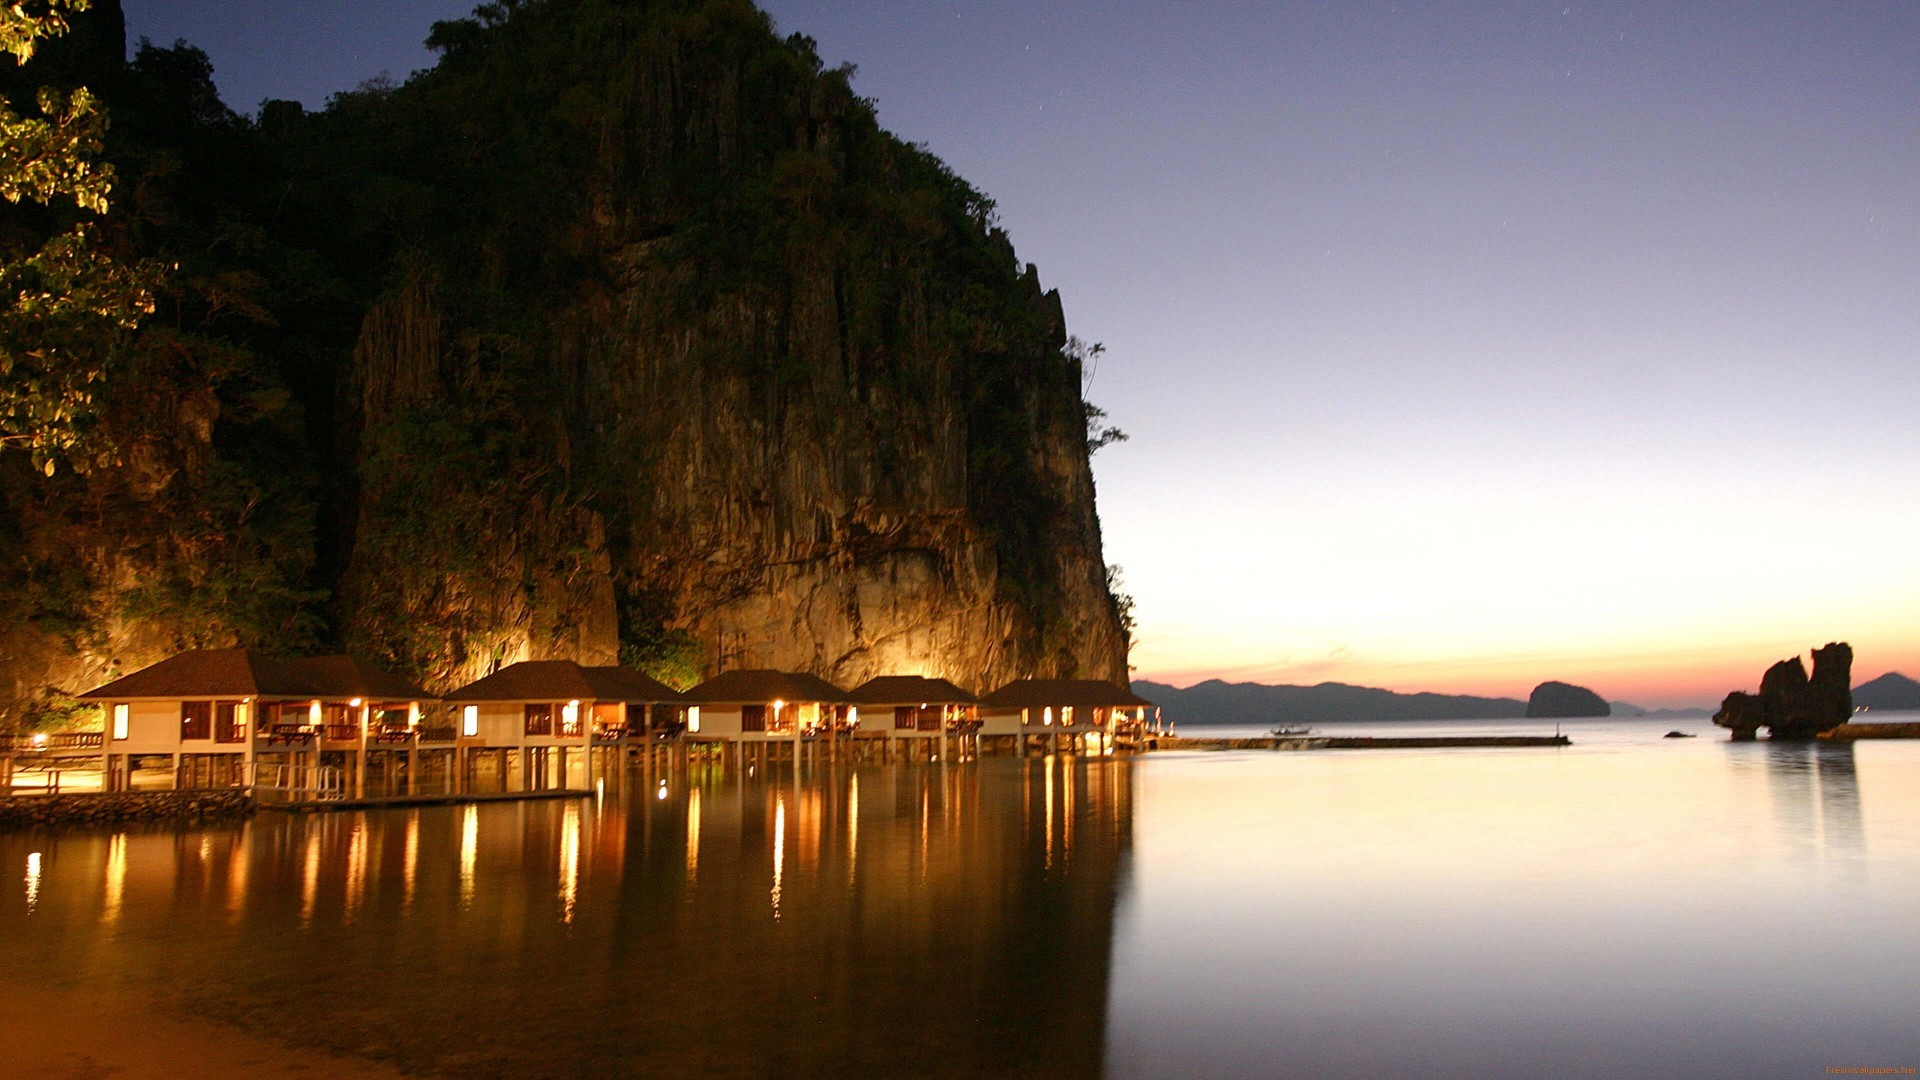 Res: 1920x1080, El Nido Travel Resort At Night Philippines wallpaper